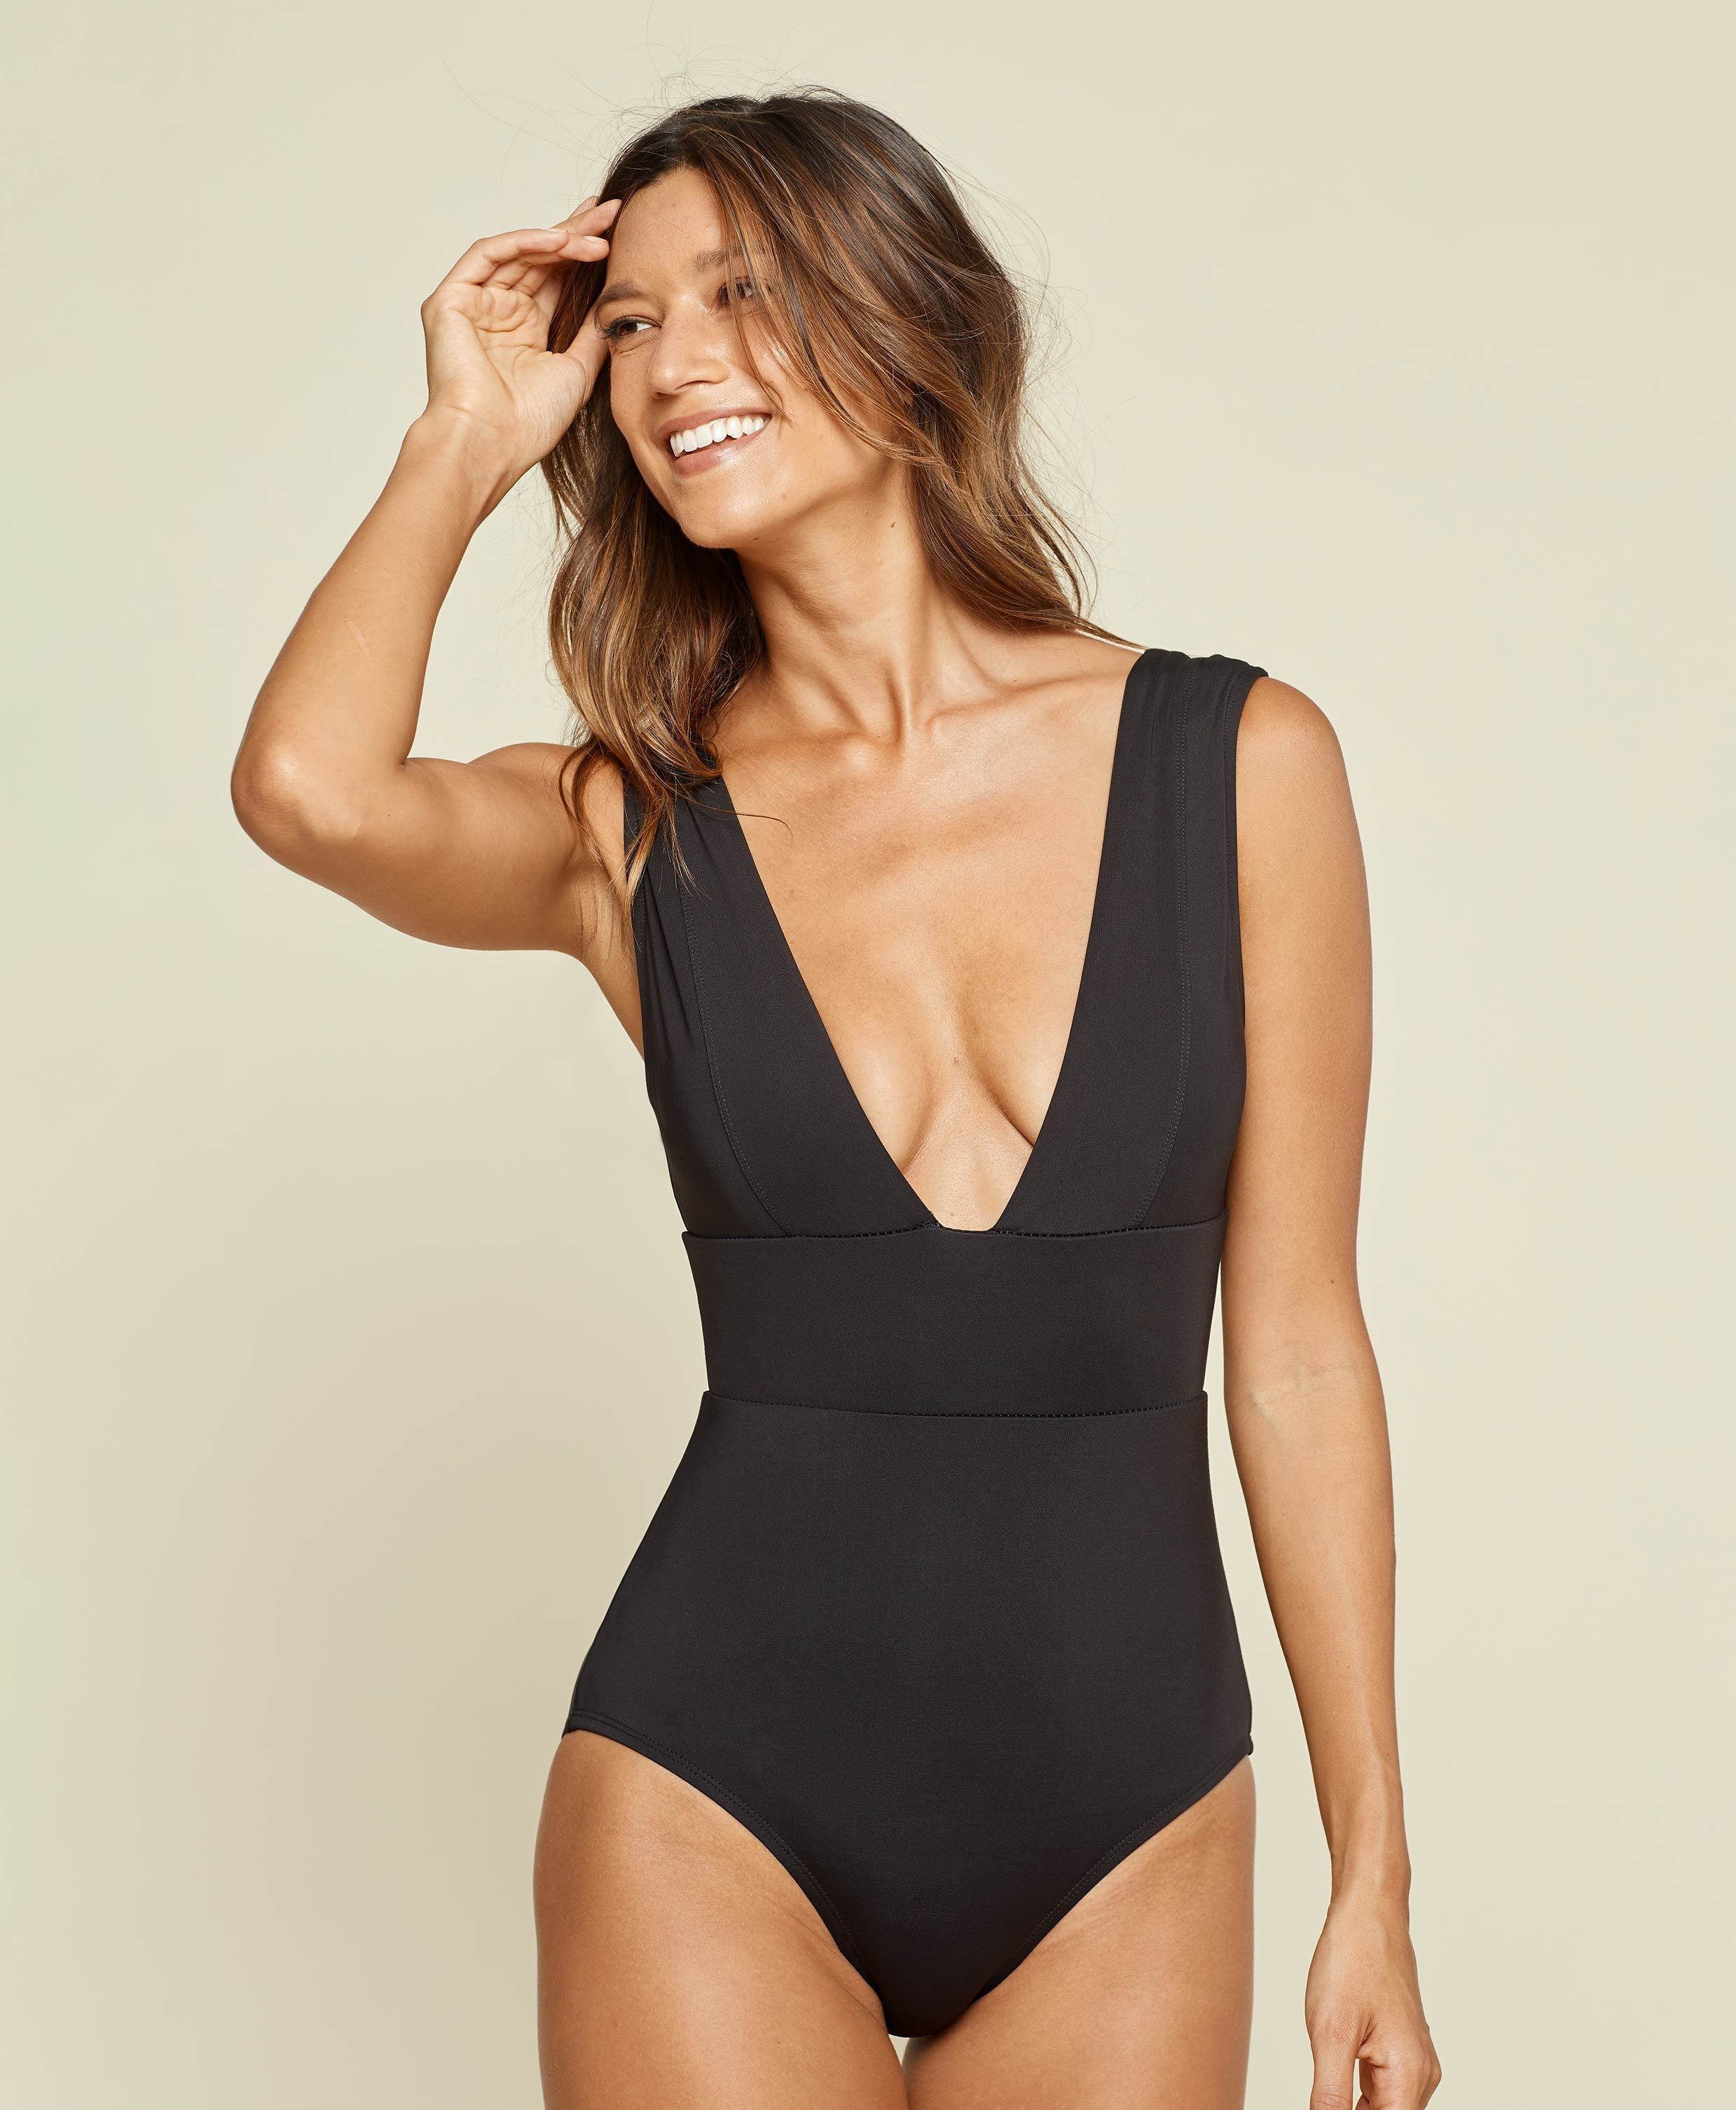 The Mykonos - Flat - Black - Long Torso